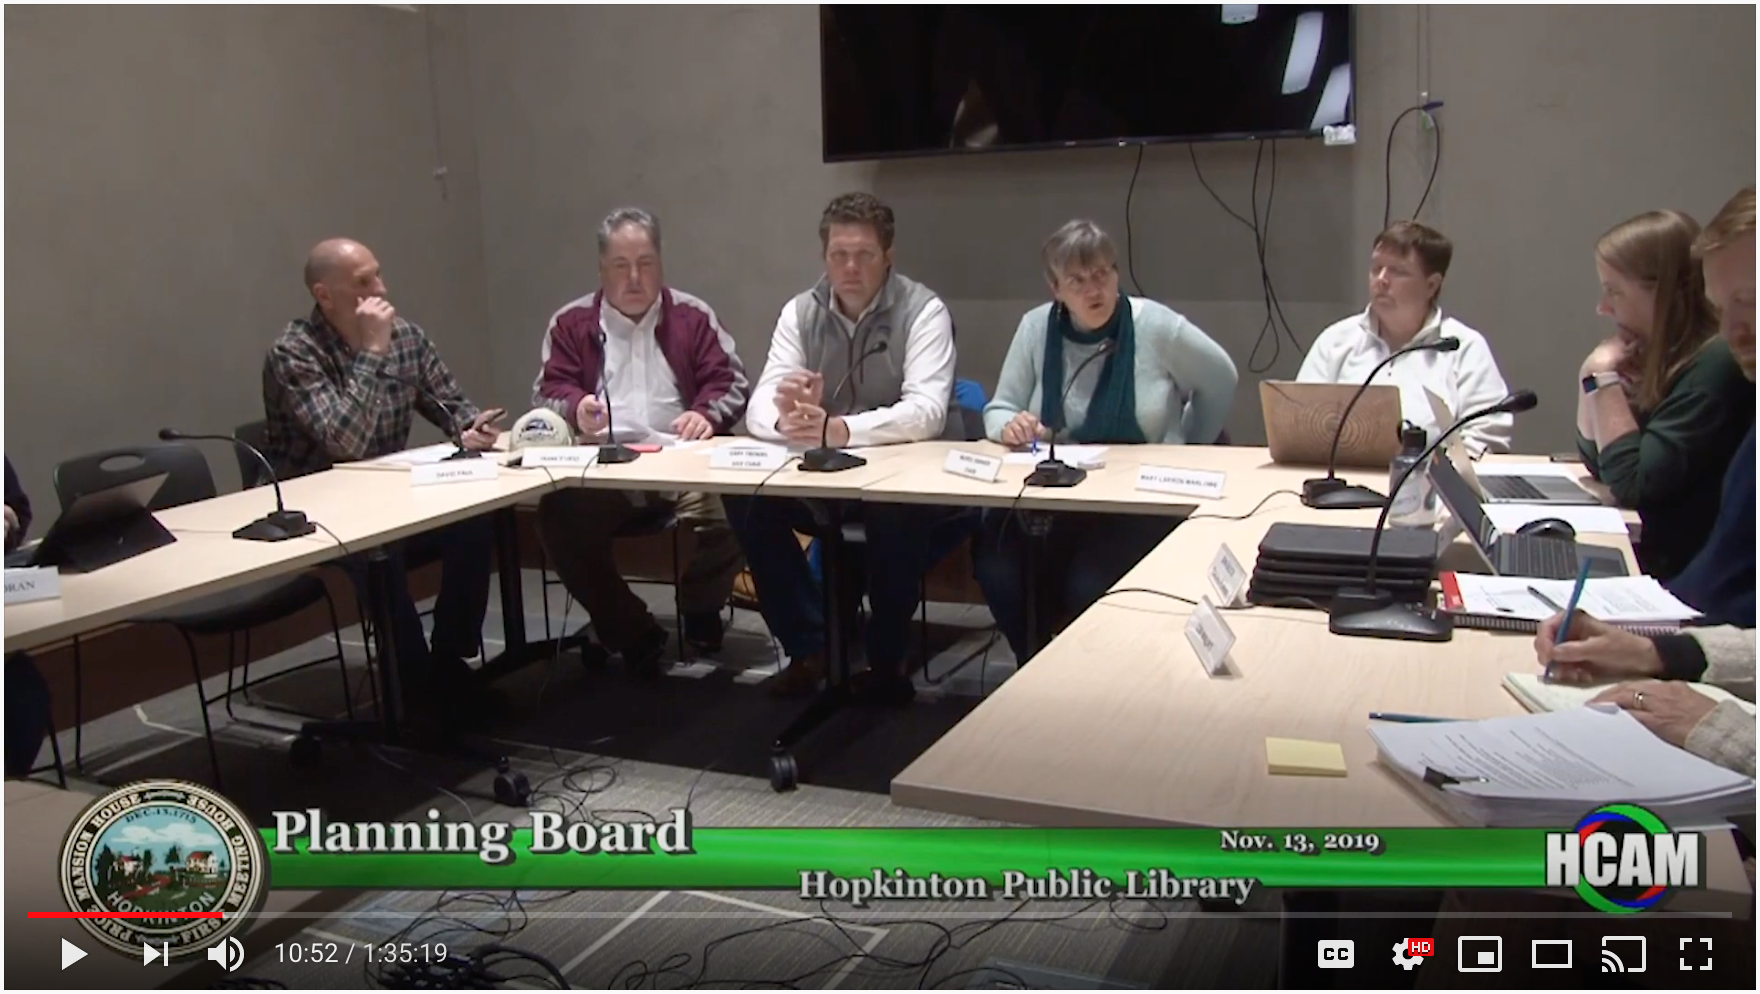 Planning Board Actions Taken 11/13/19